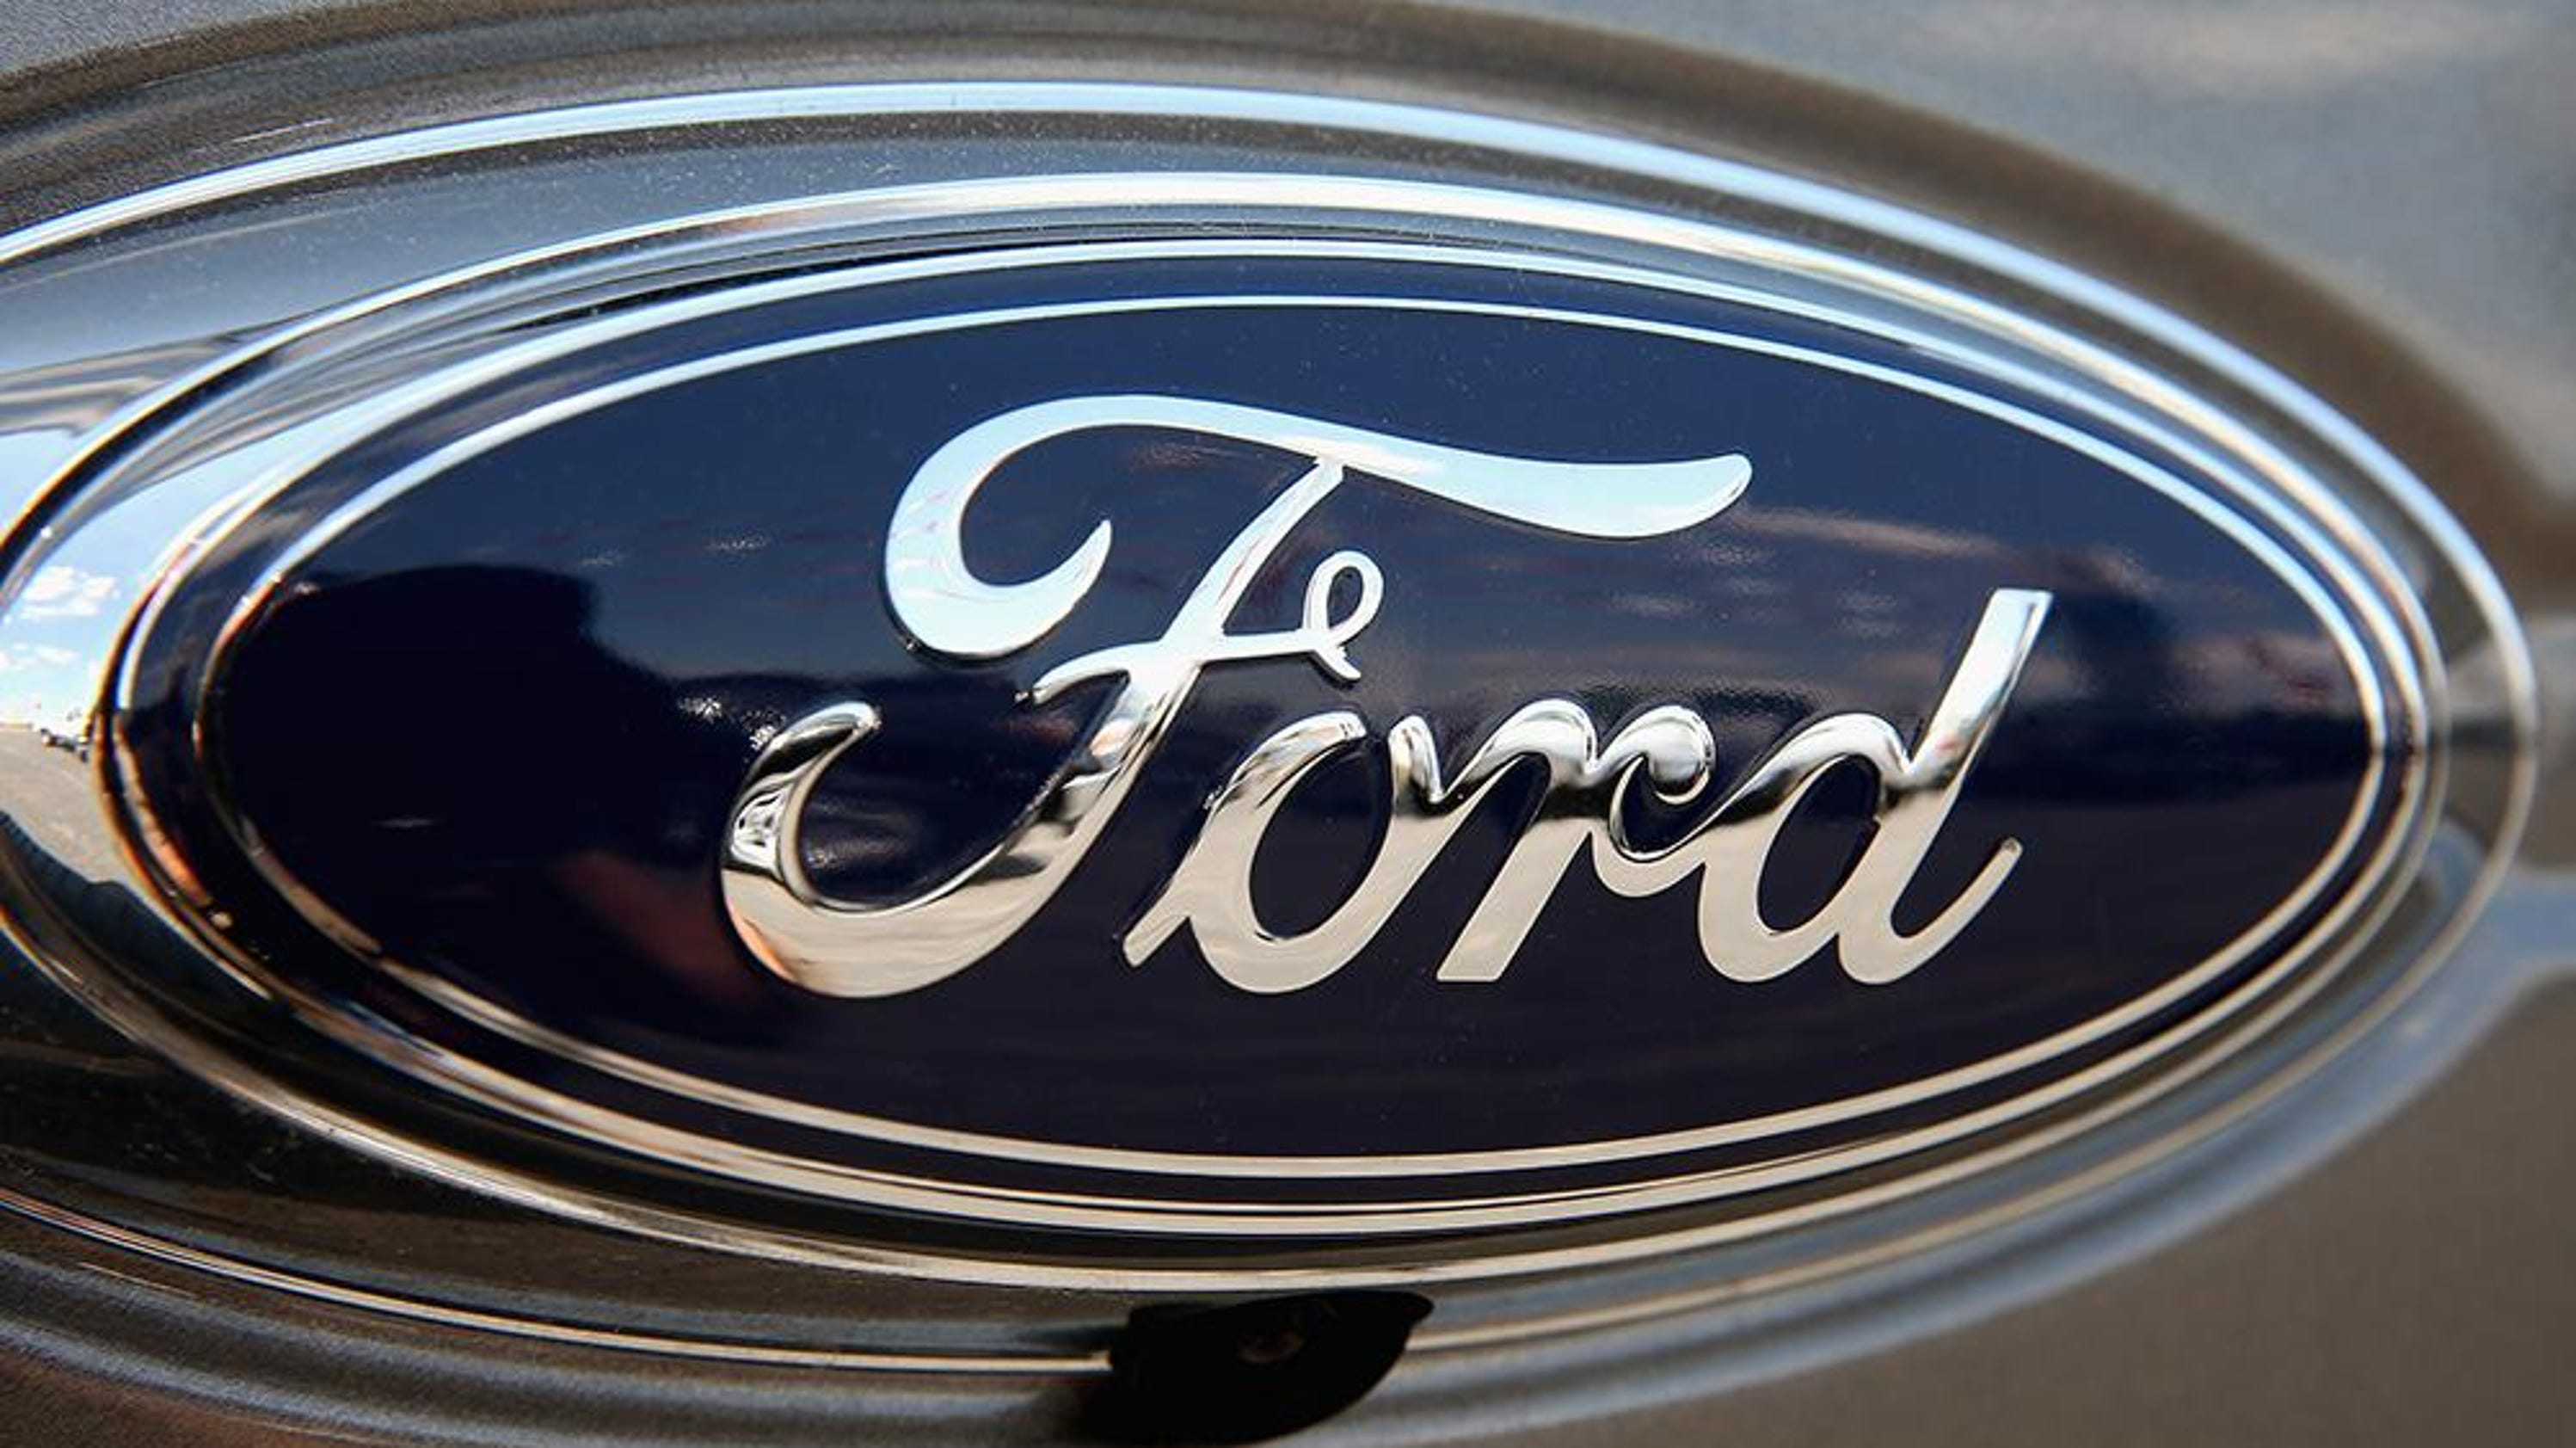 70s ford cars tag usa breaking news